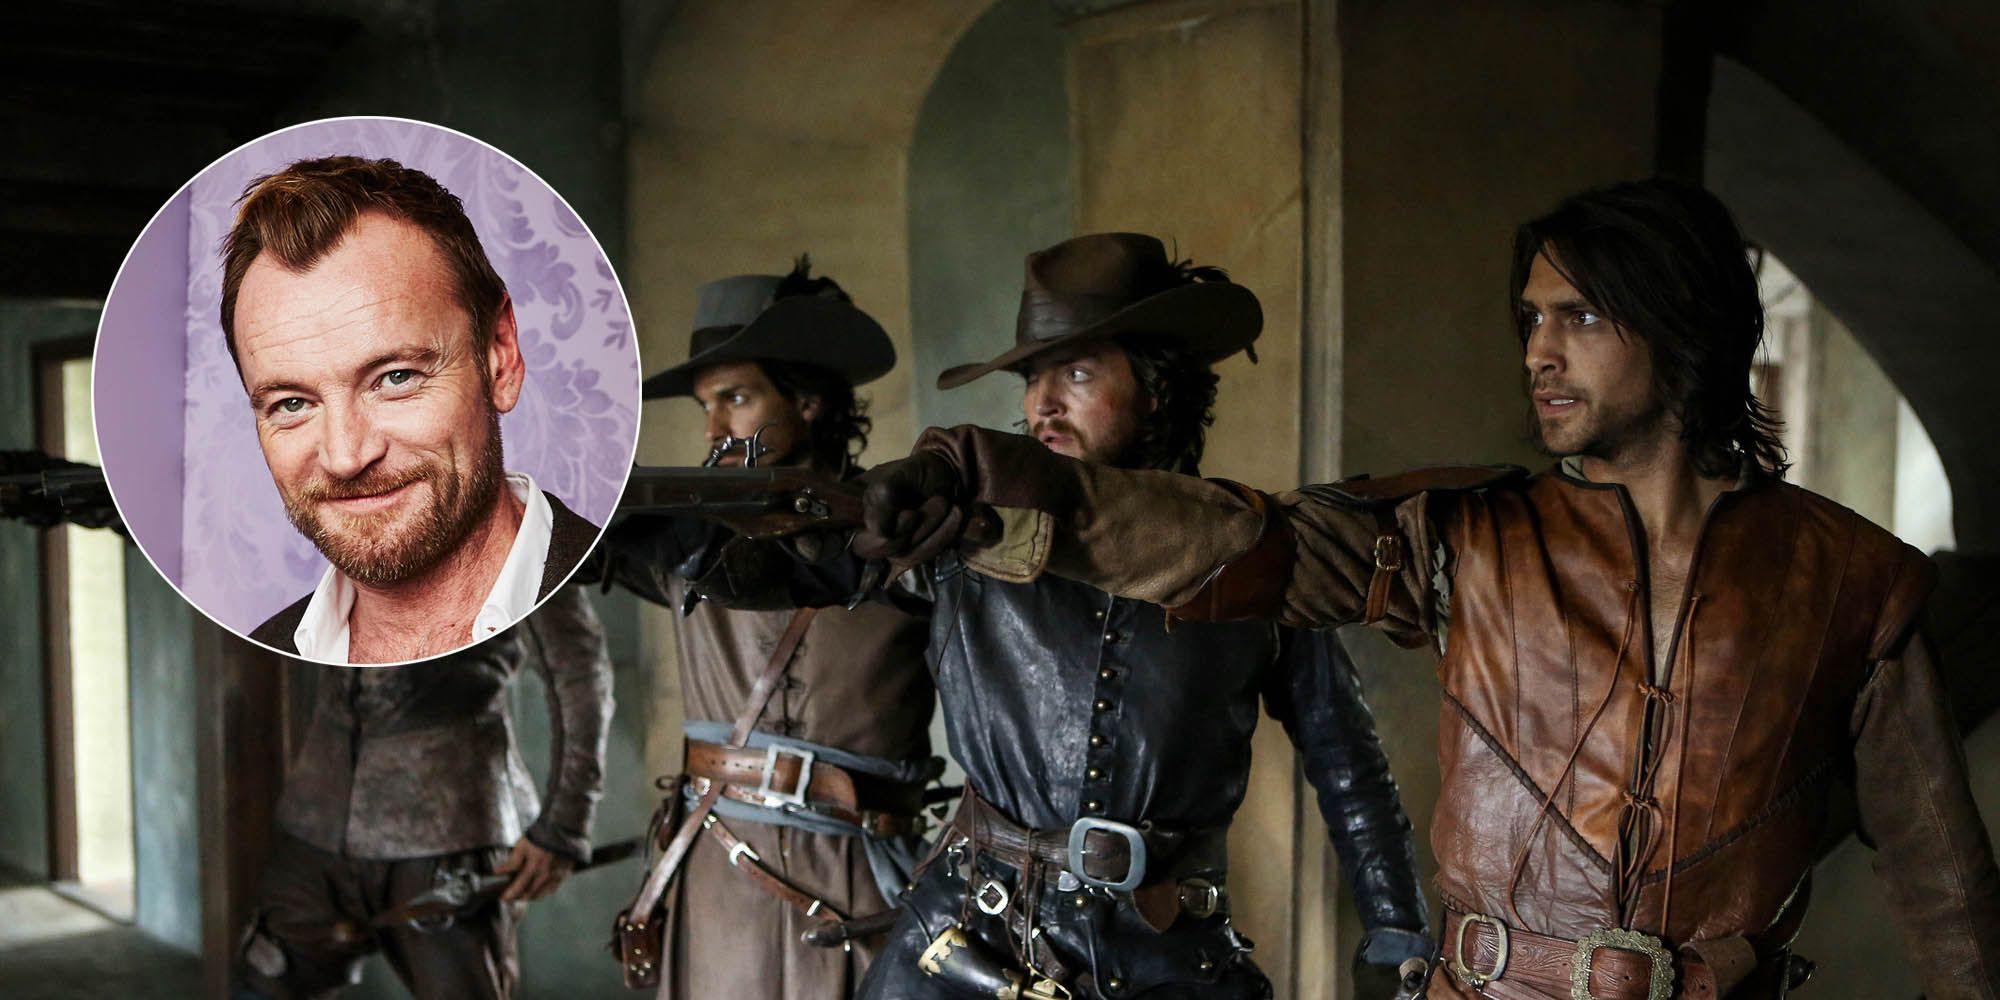 PHOTOSHOP: Richard Dormer joins The Musketeers